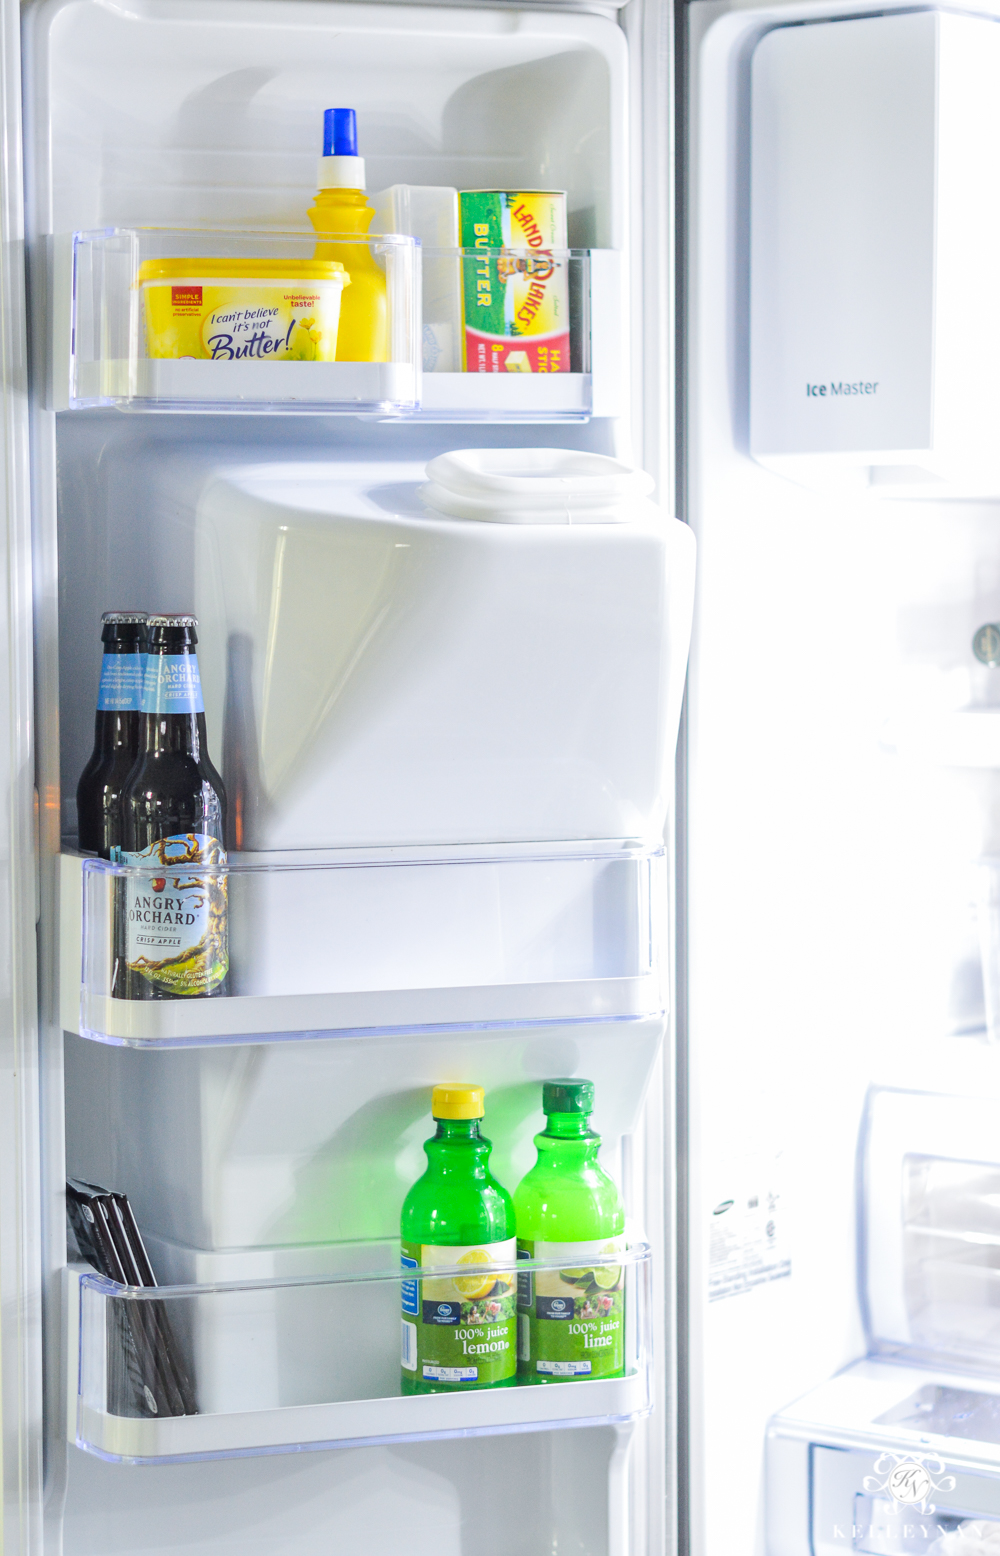 Refrigerator Organization and Best Ways to Organize the Fridge- door organization